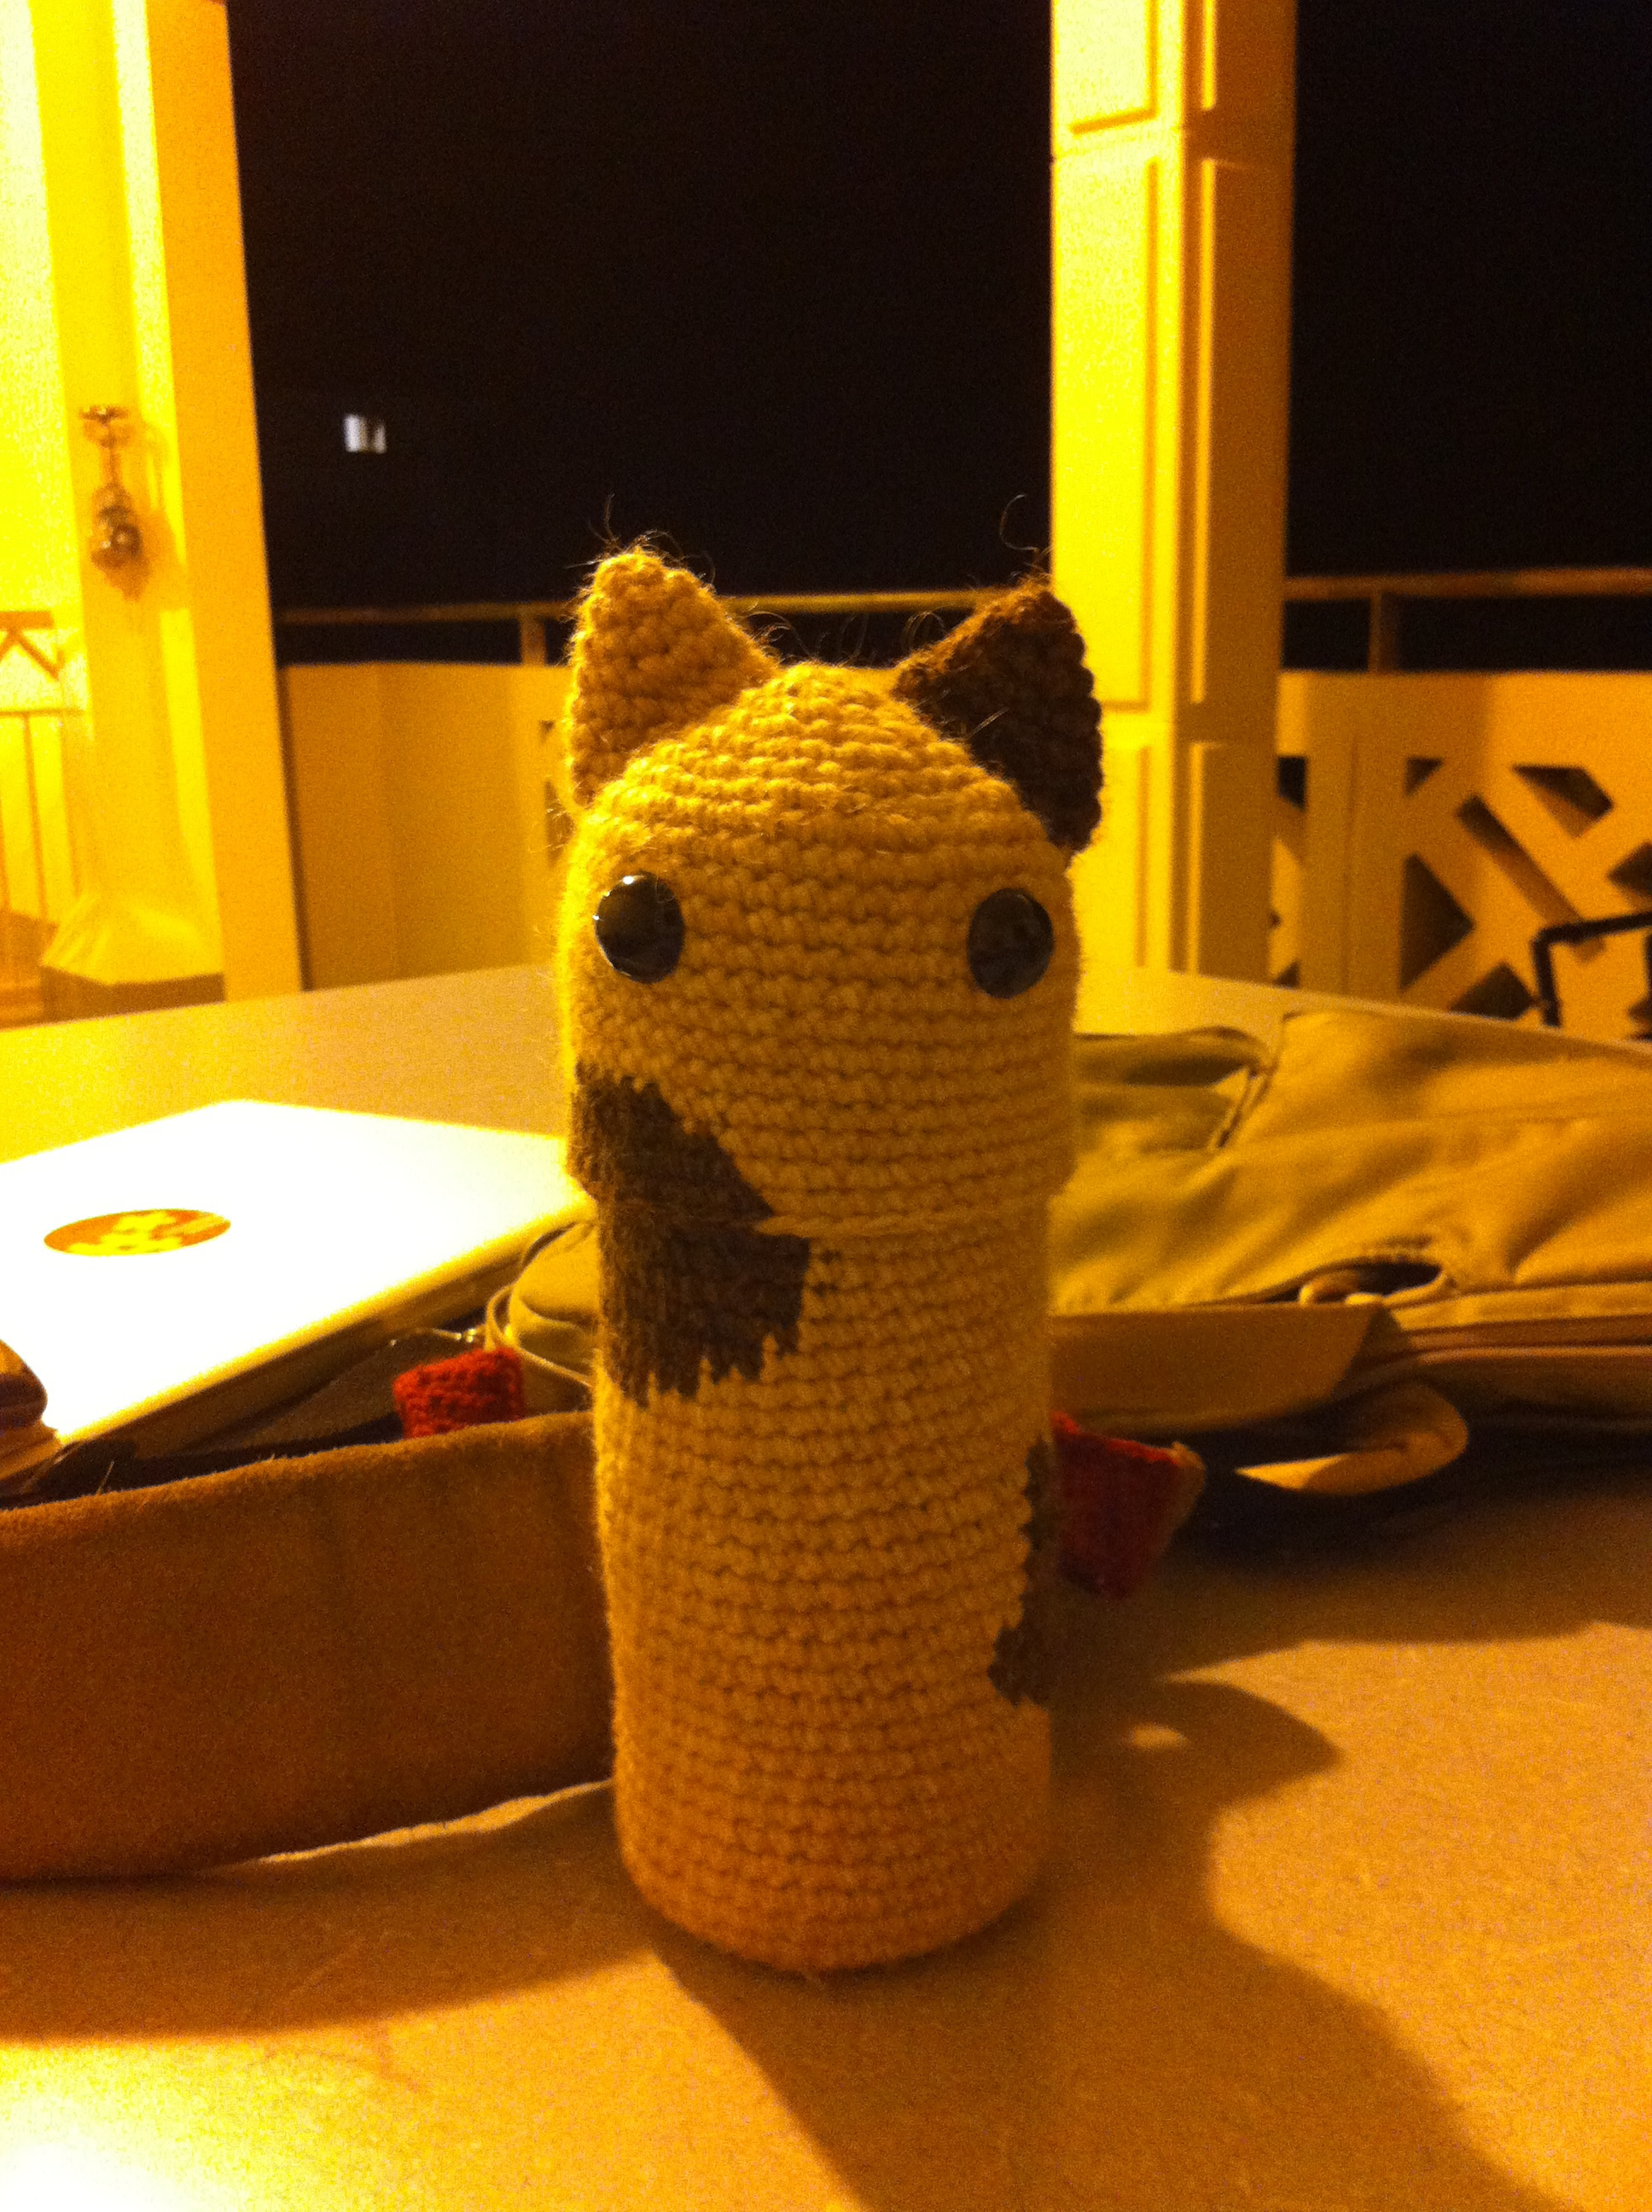 Water Cat's head flips back and then you can drink from it. It also has a crocheted carrying strap and a floppy cat tail in the back that you can't see from this angle.